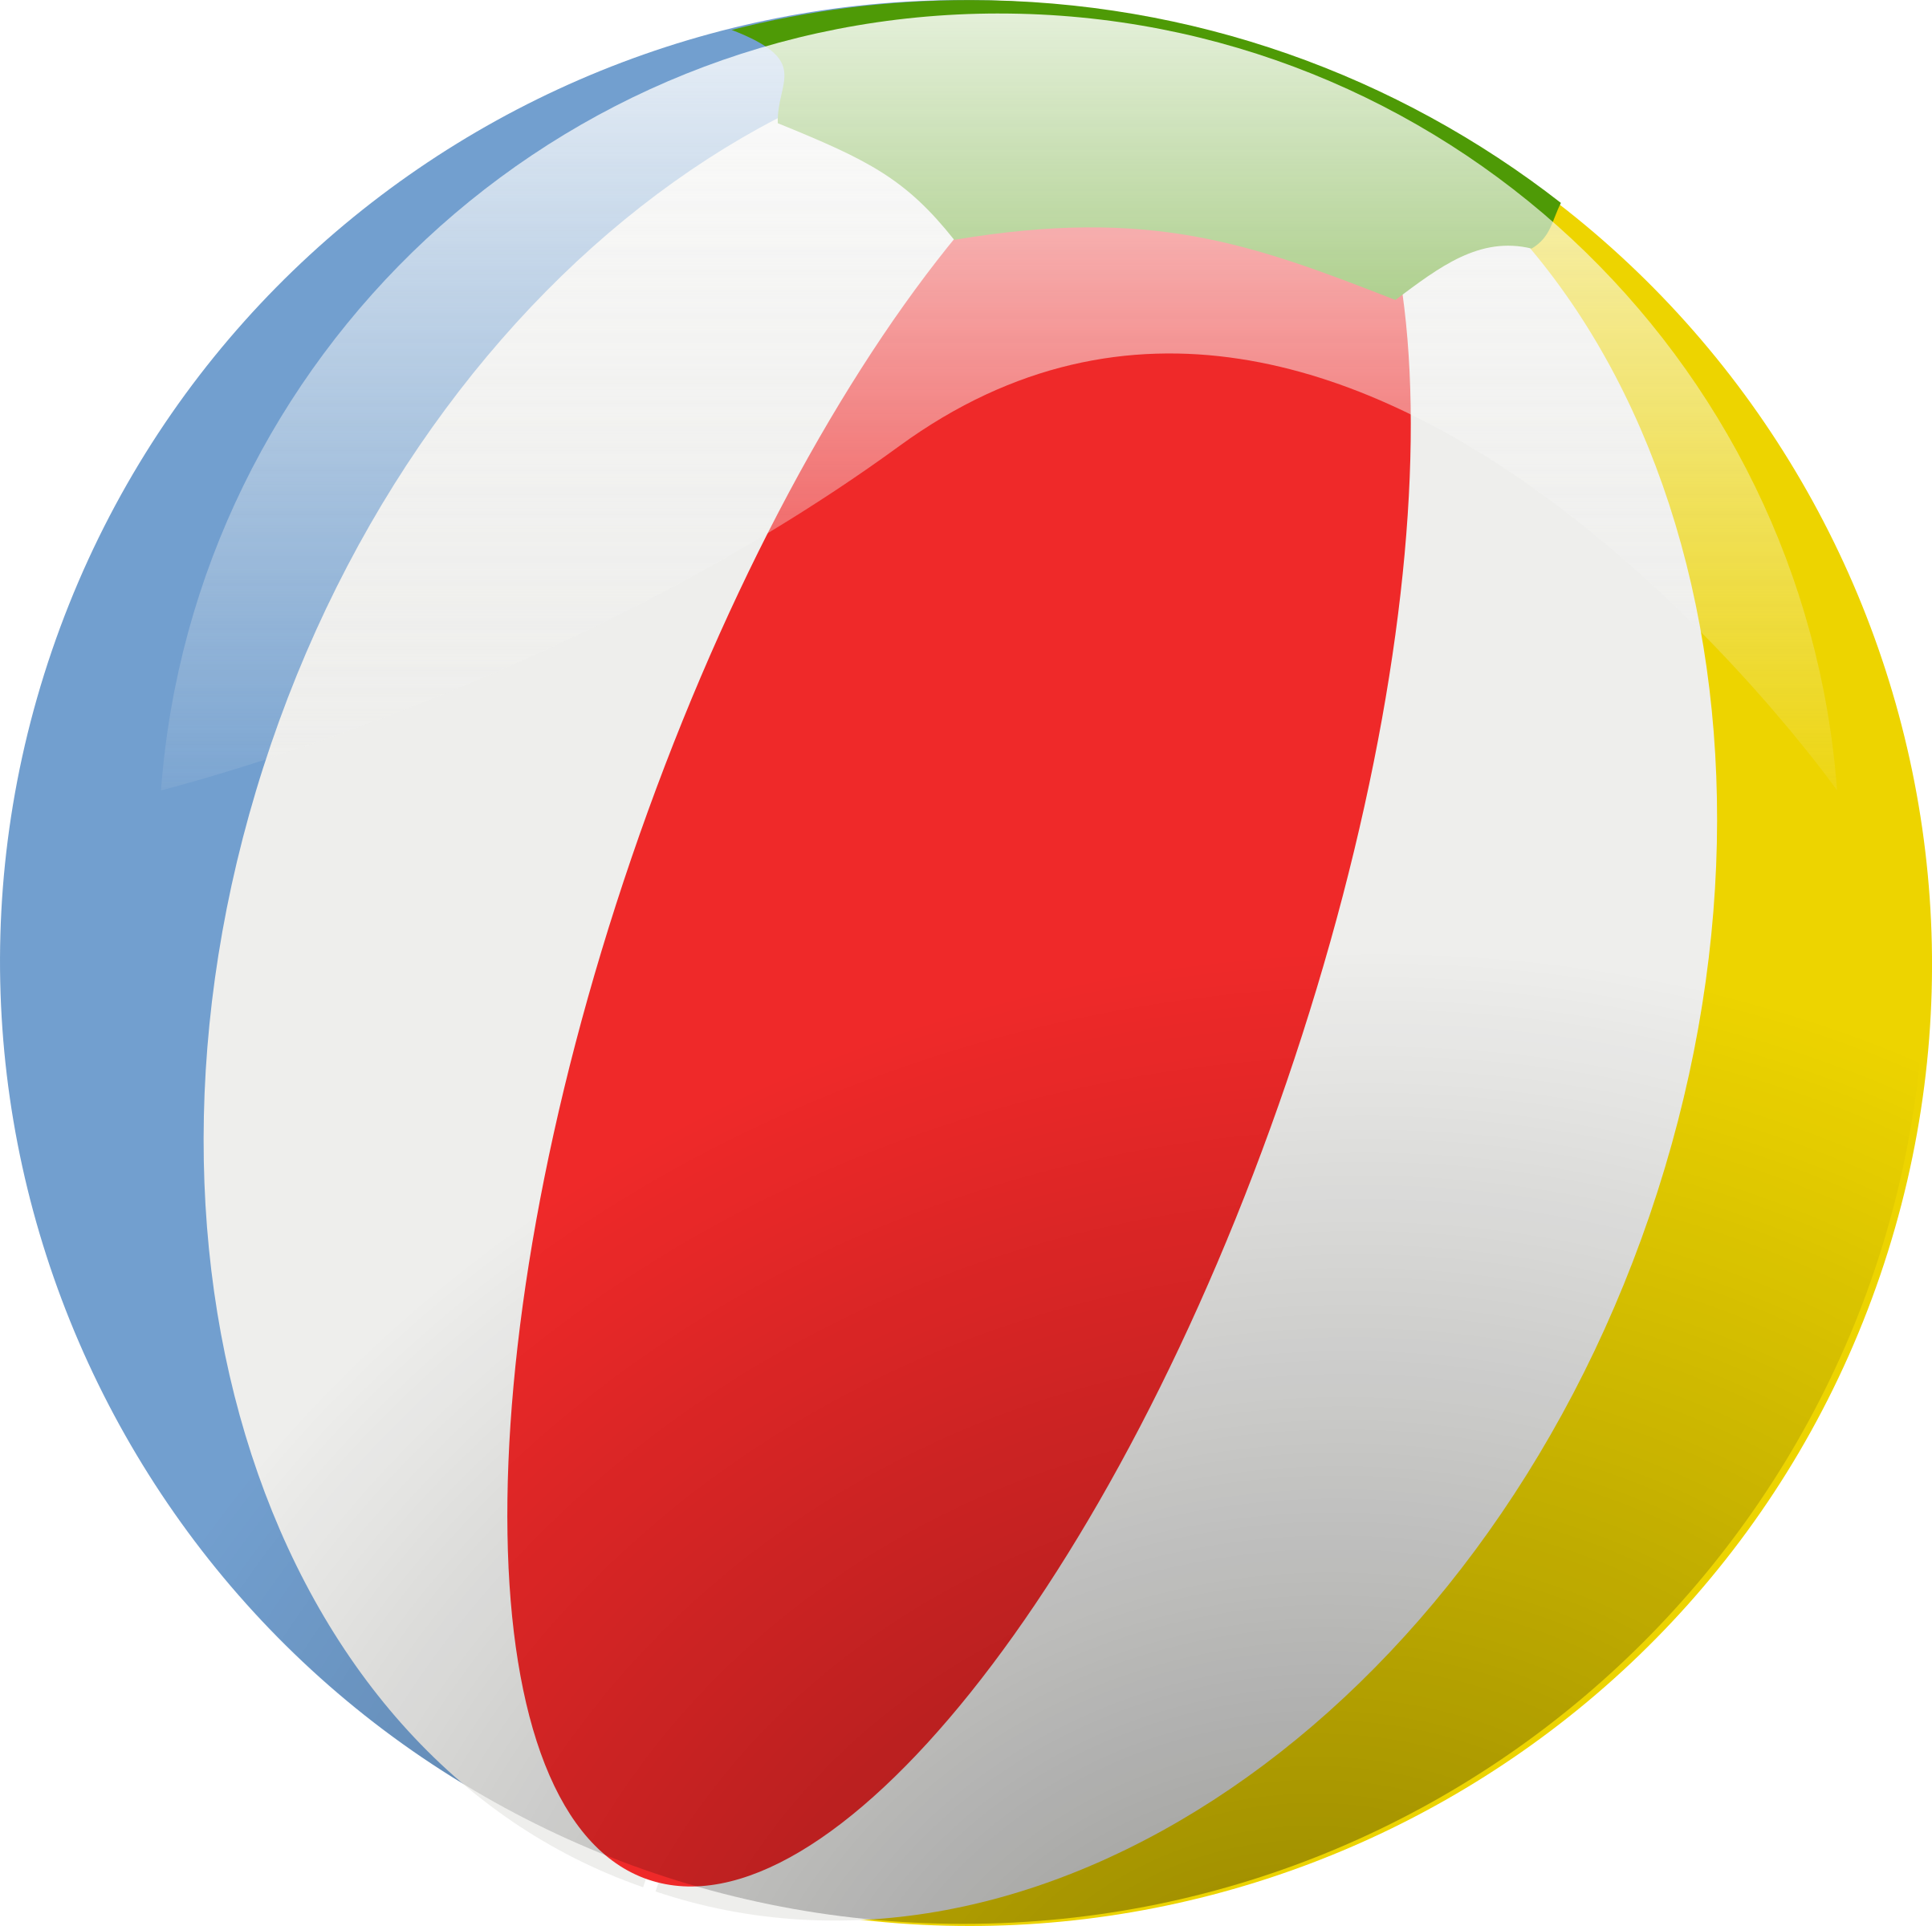 Beach ball transparent png. Images all free image